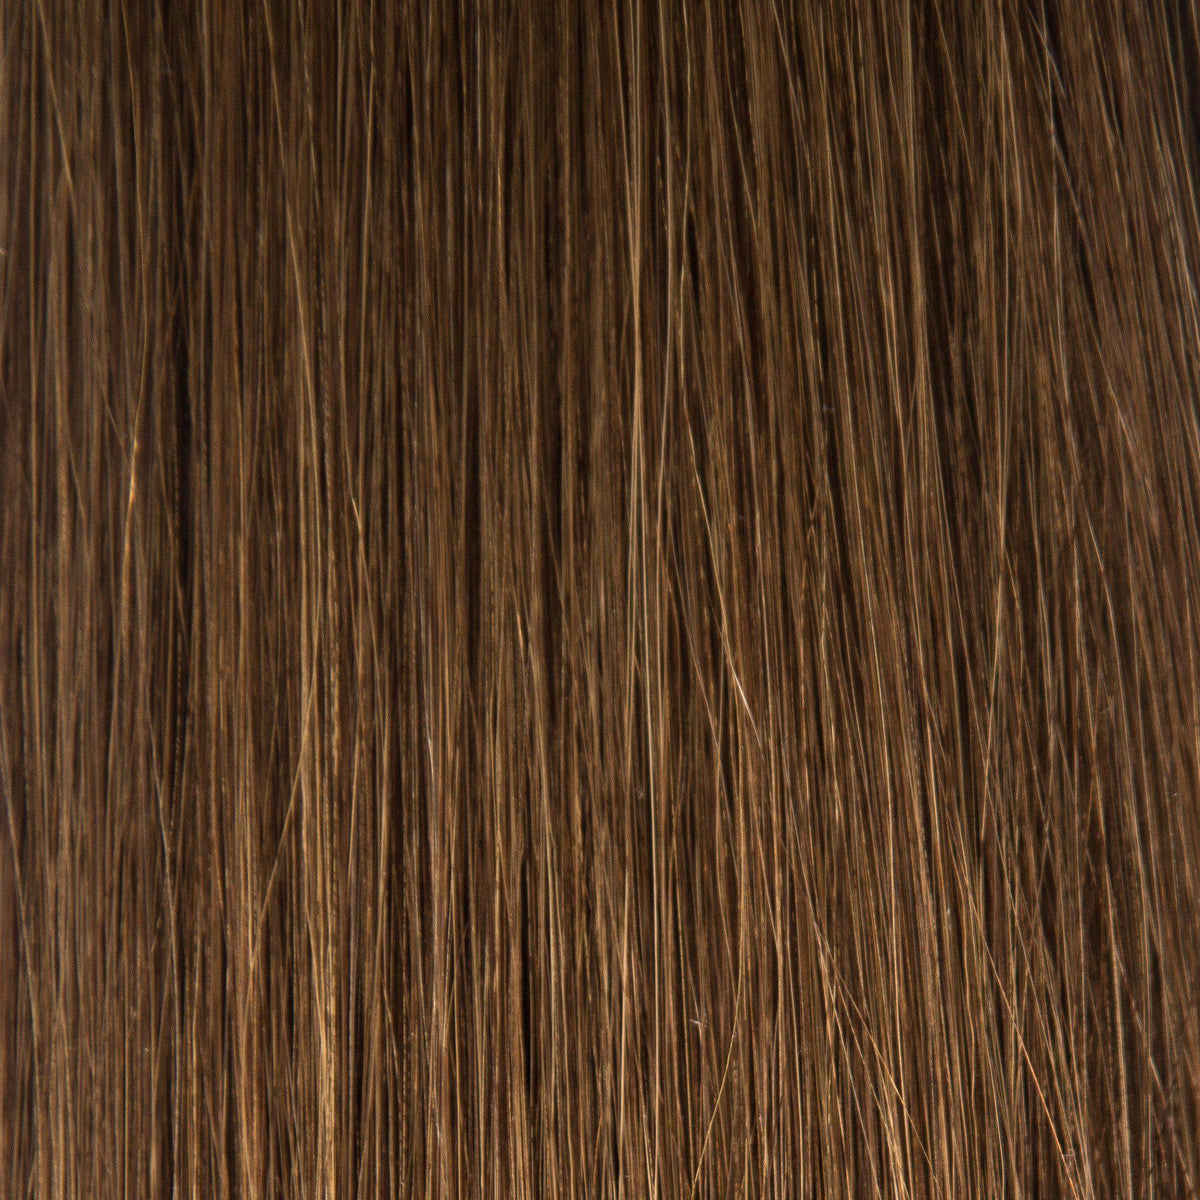 Waved By Laced Hair - Waved By Laced Hair Machine Sewn Weft Extensions #4